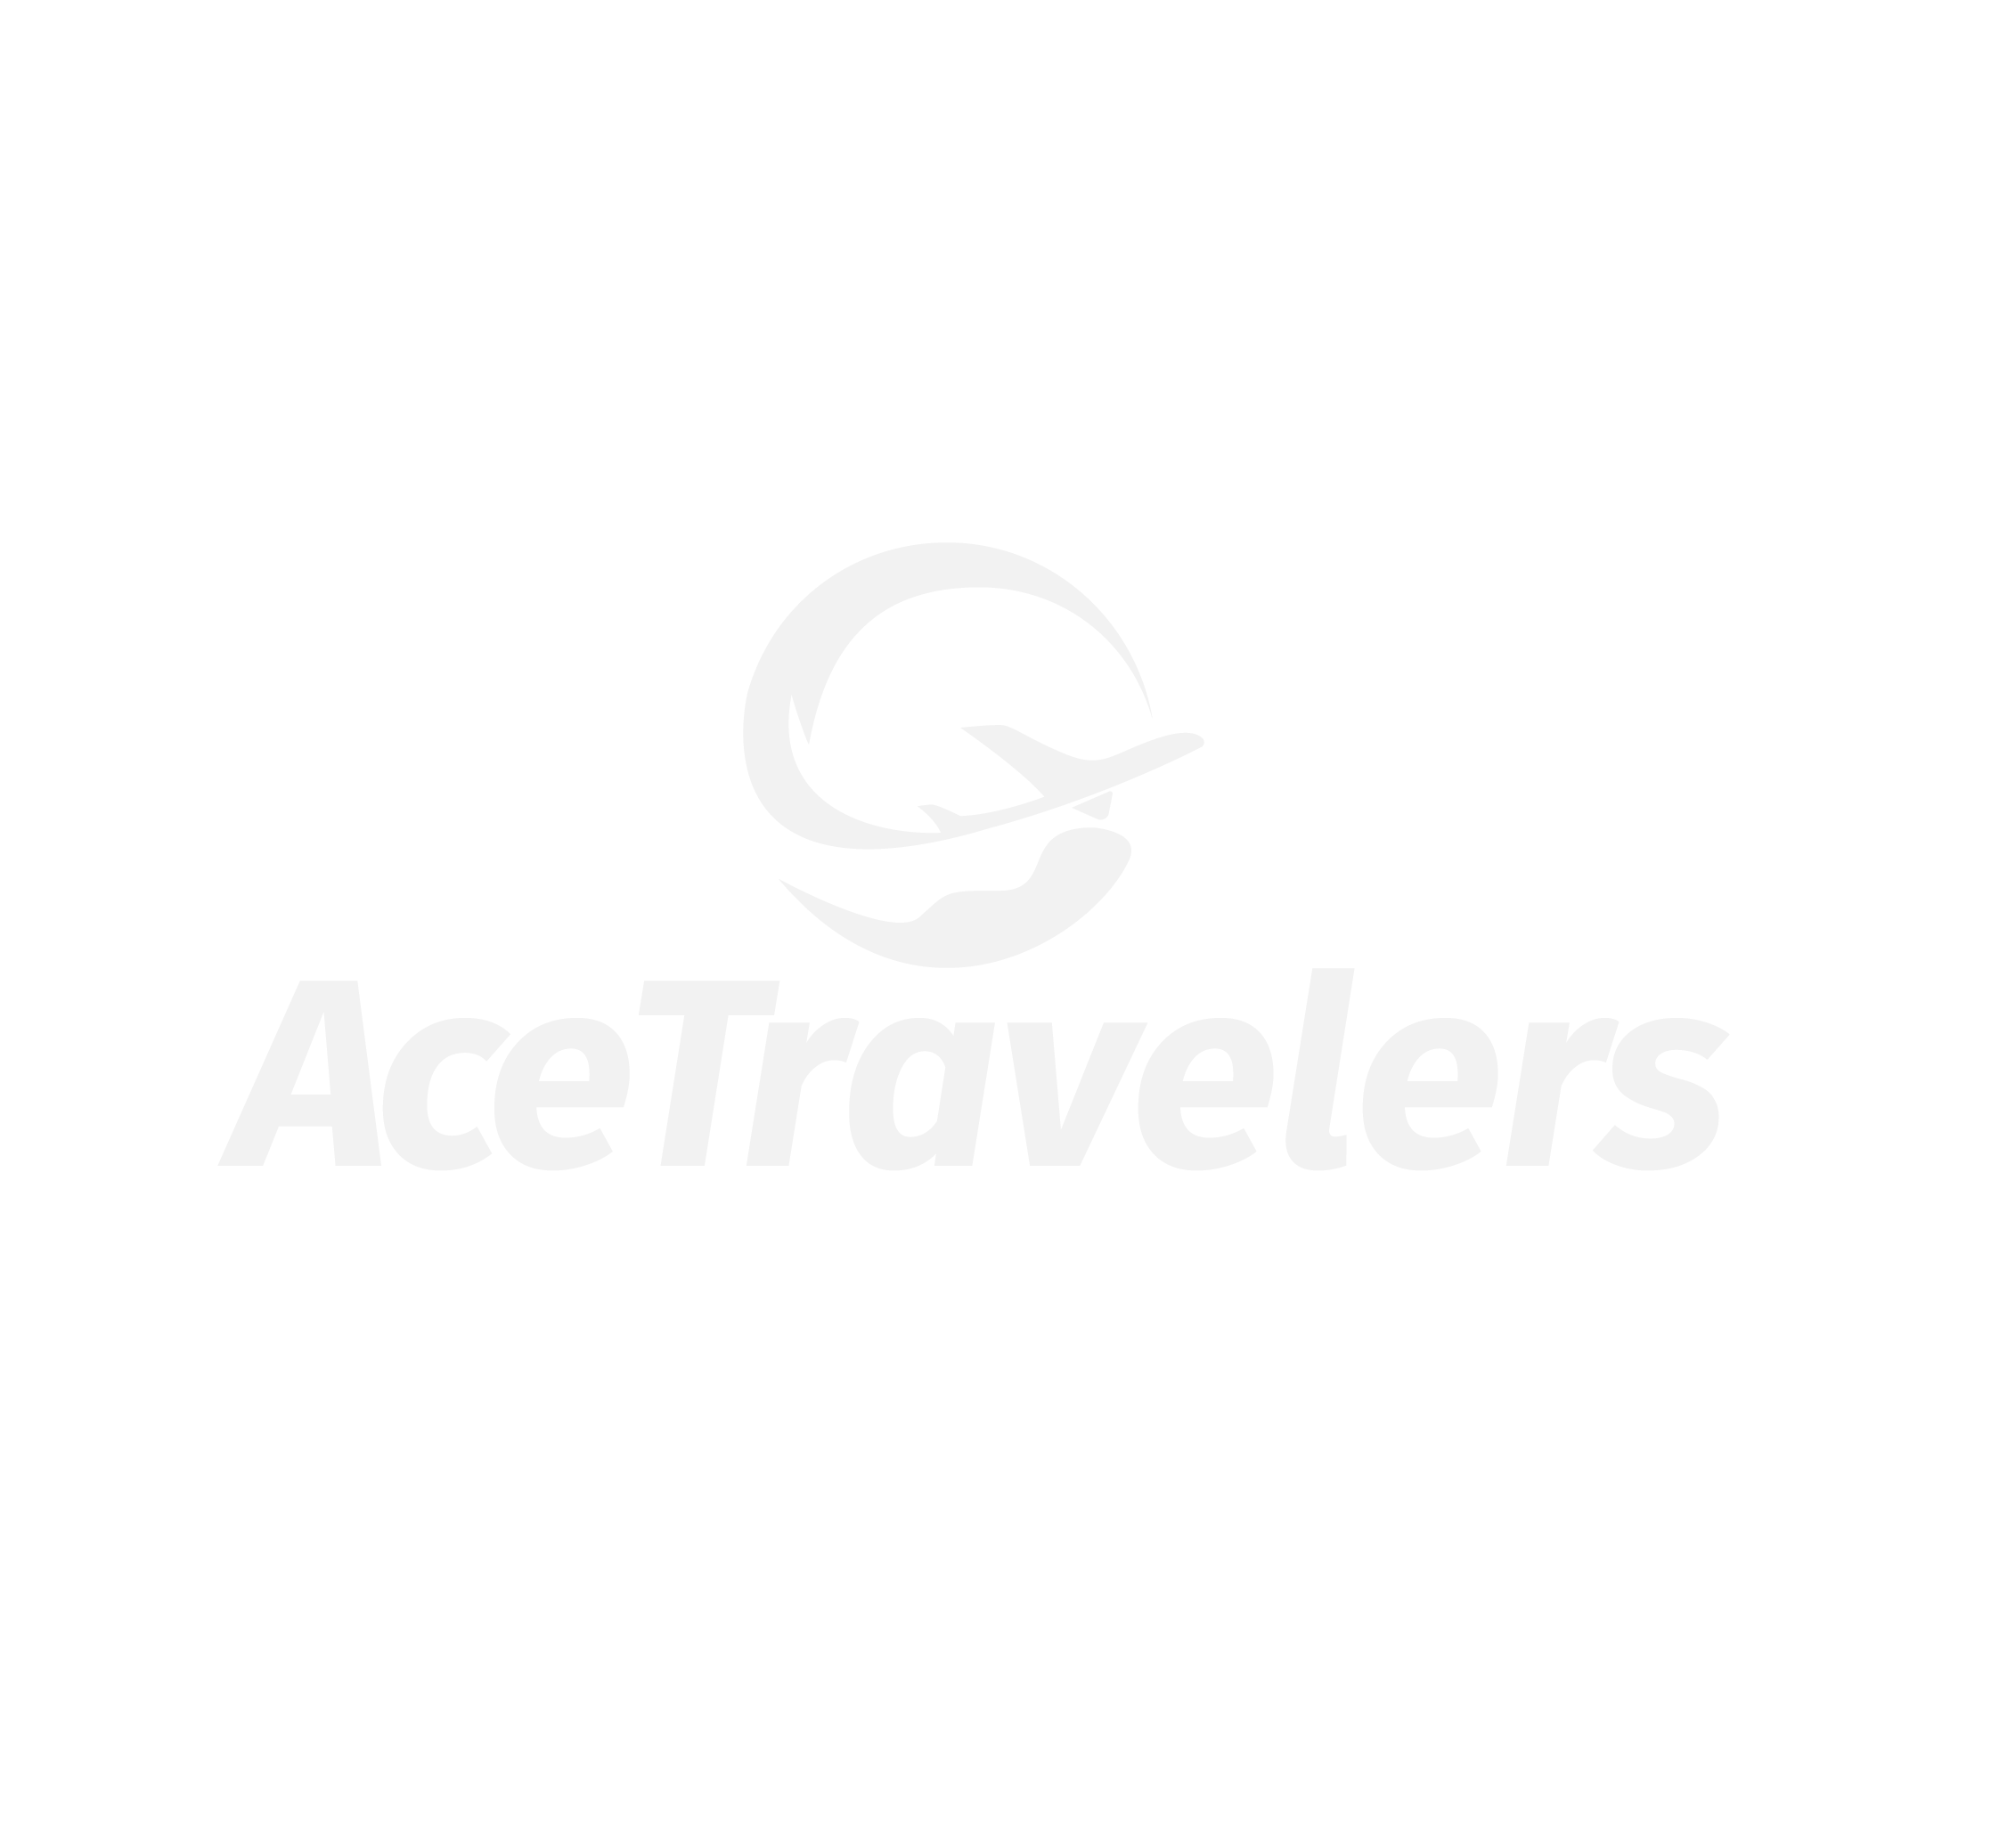 Ace Travelers logo